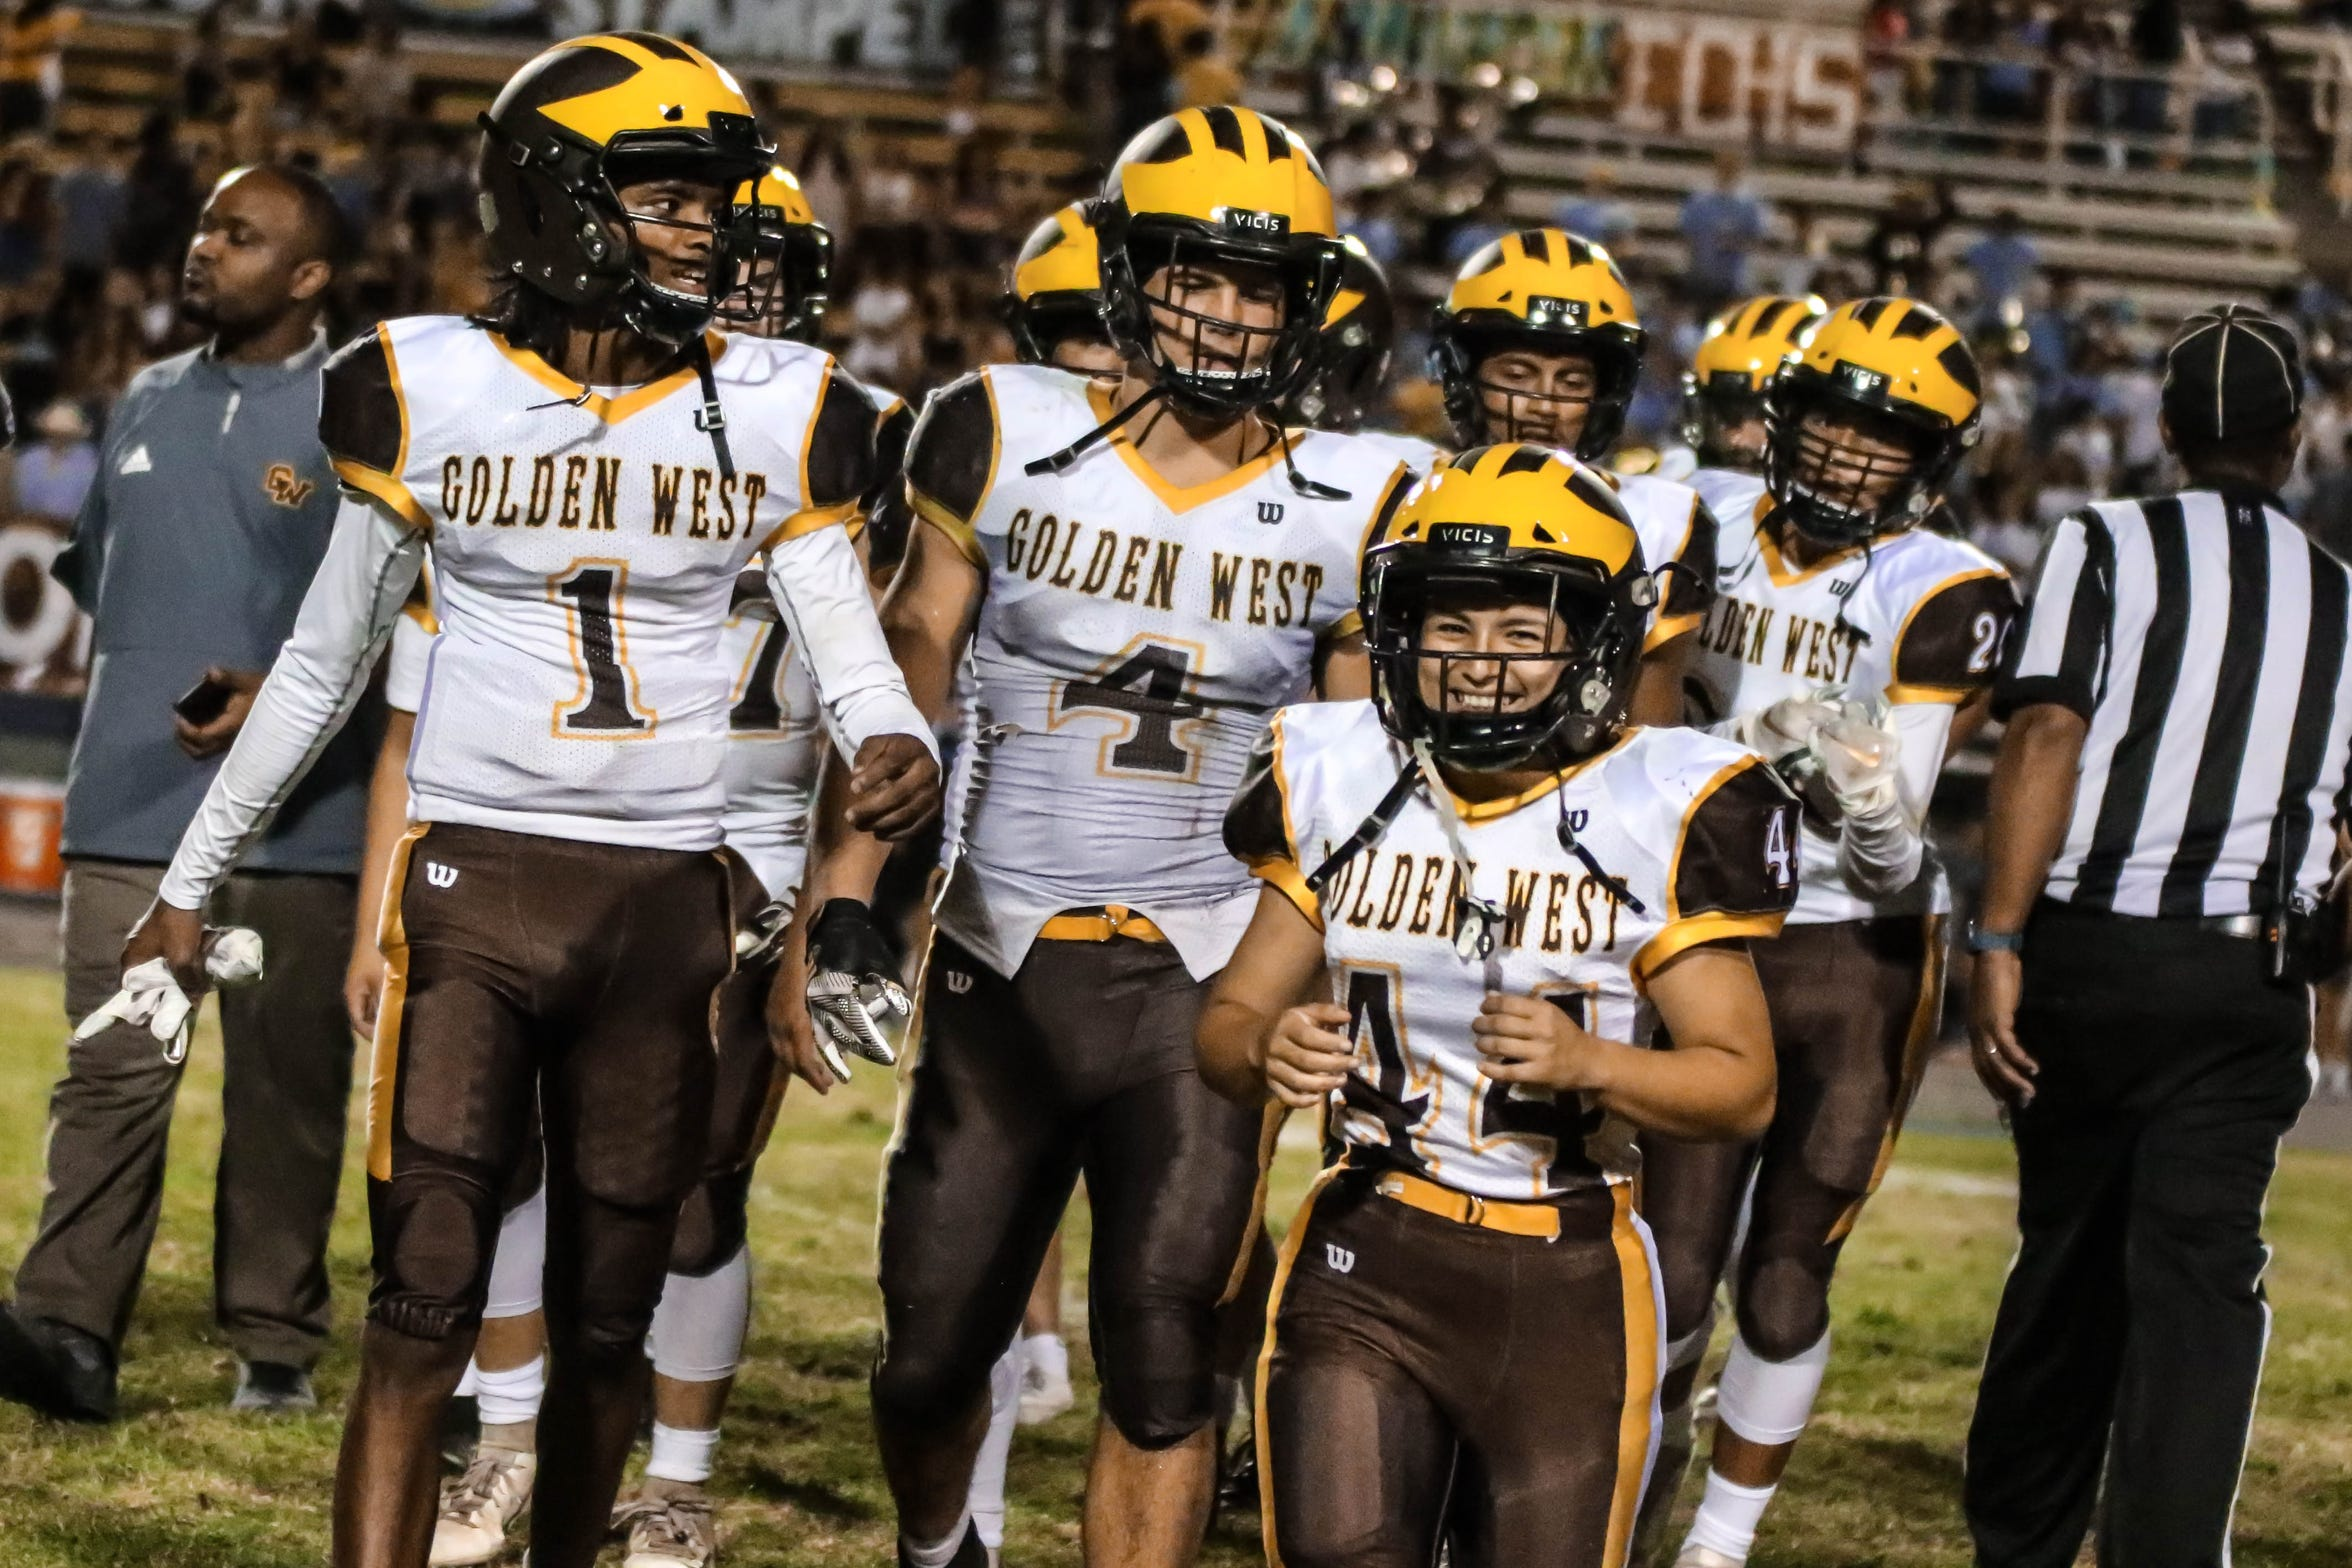 Golden West's Angel Celaya (44) celebrates after the team's win over El Capitan-Merced in Week 2.